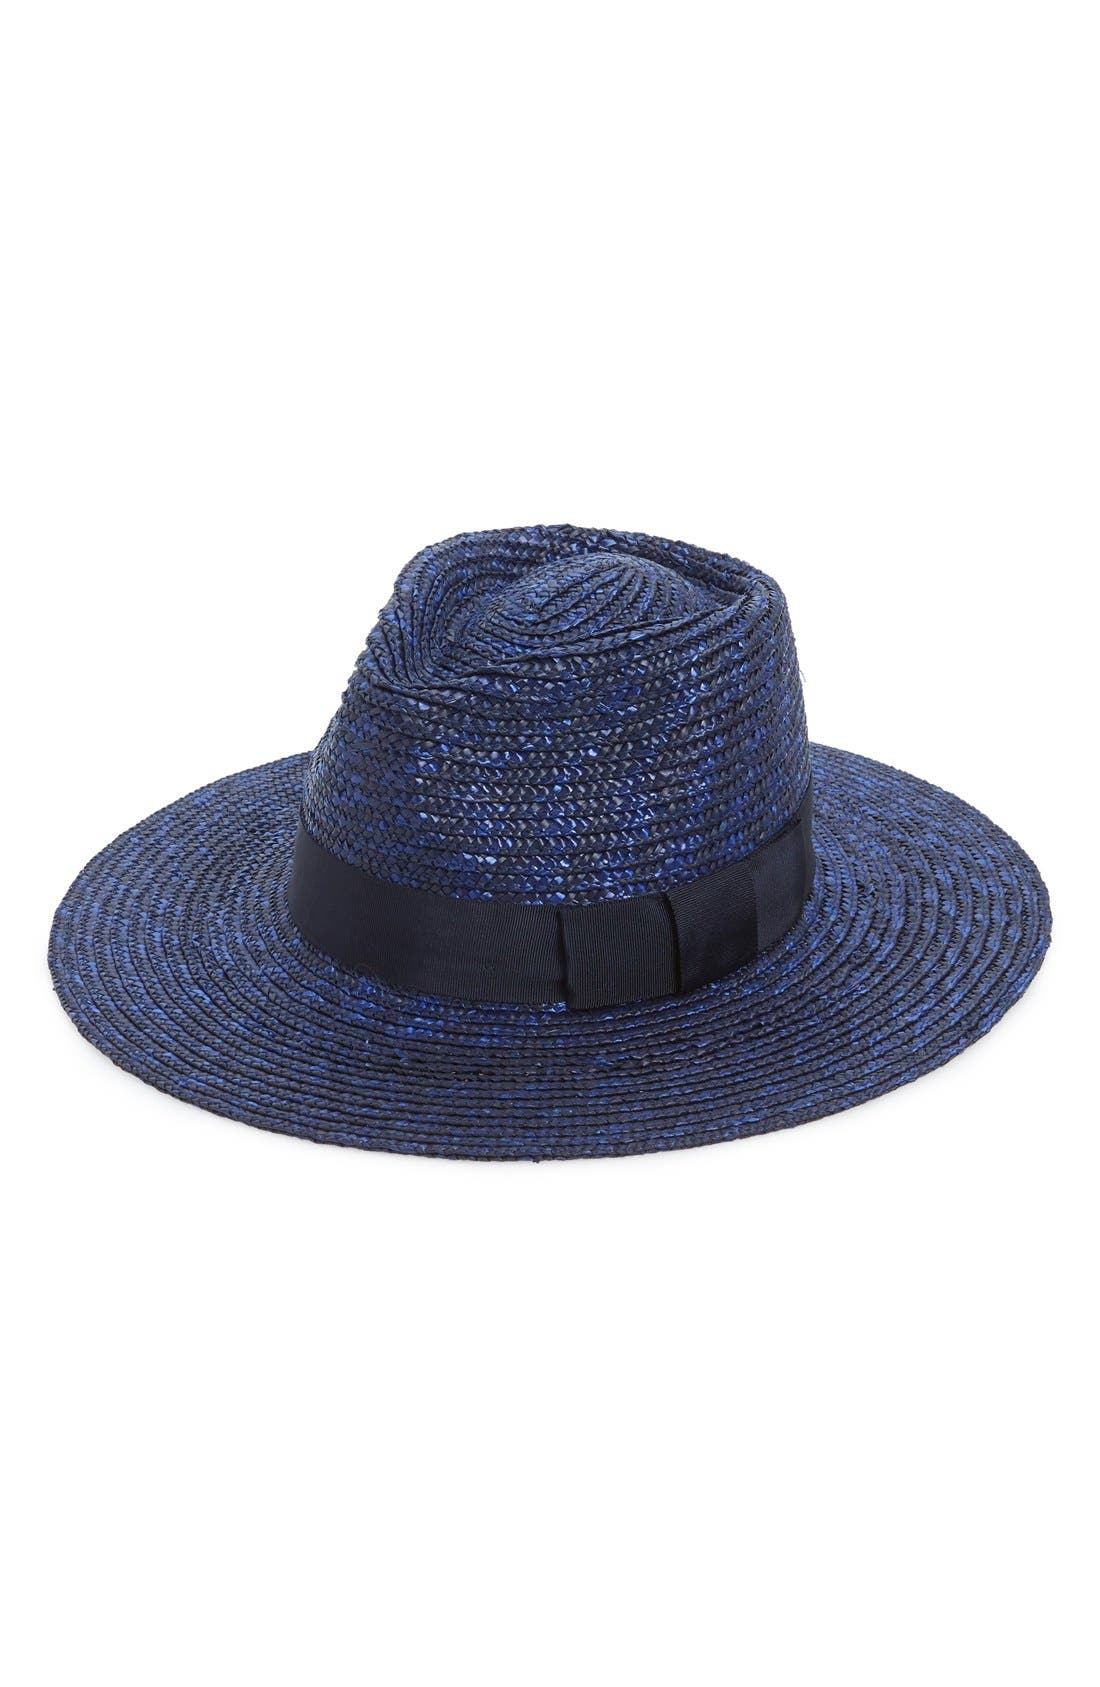 'Joanna' Straw Hat,                             Main thumbnail 1, color,                             MIDNIGHT